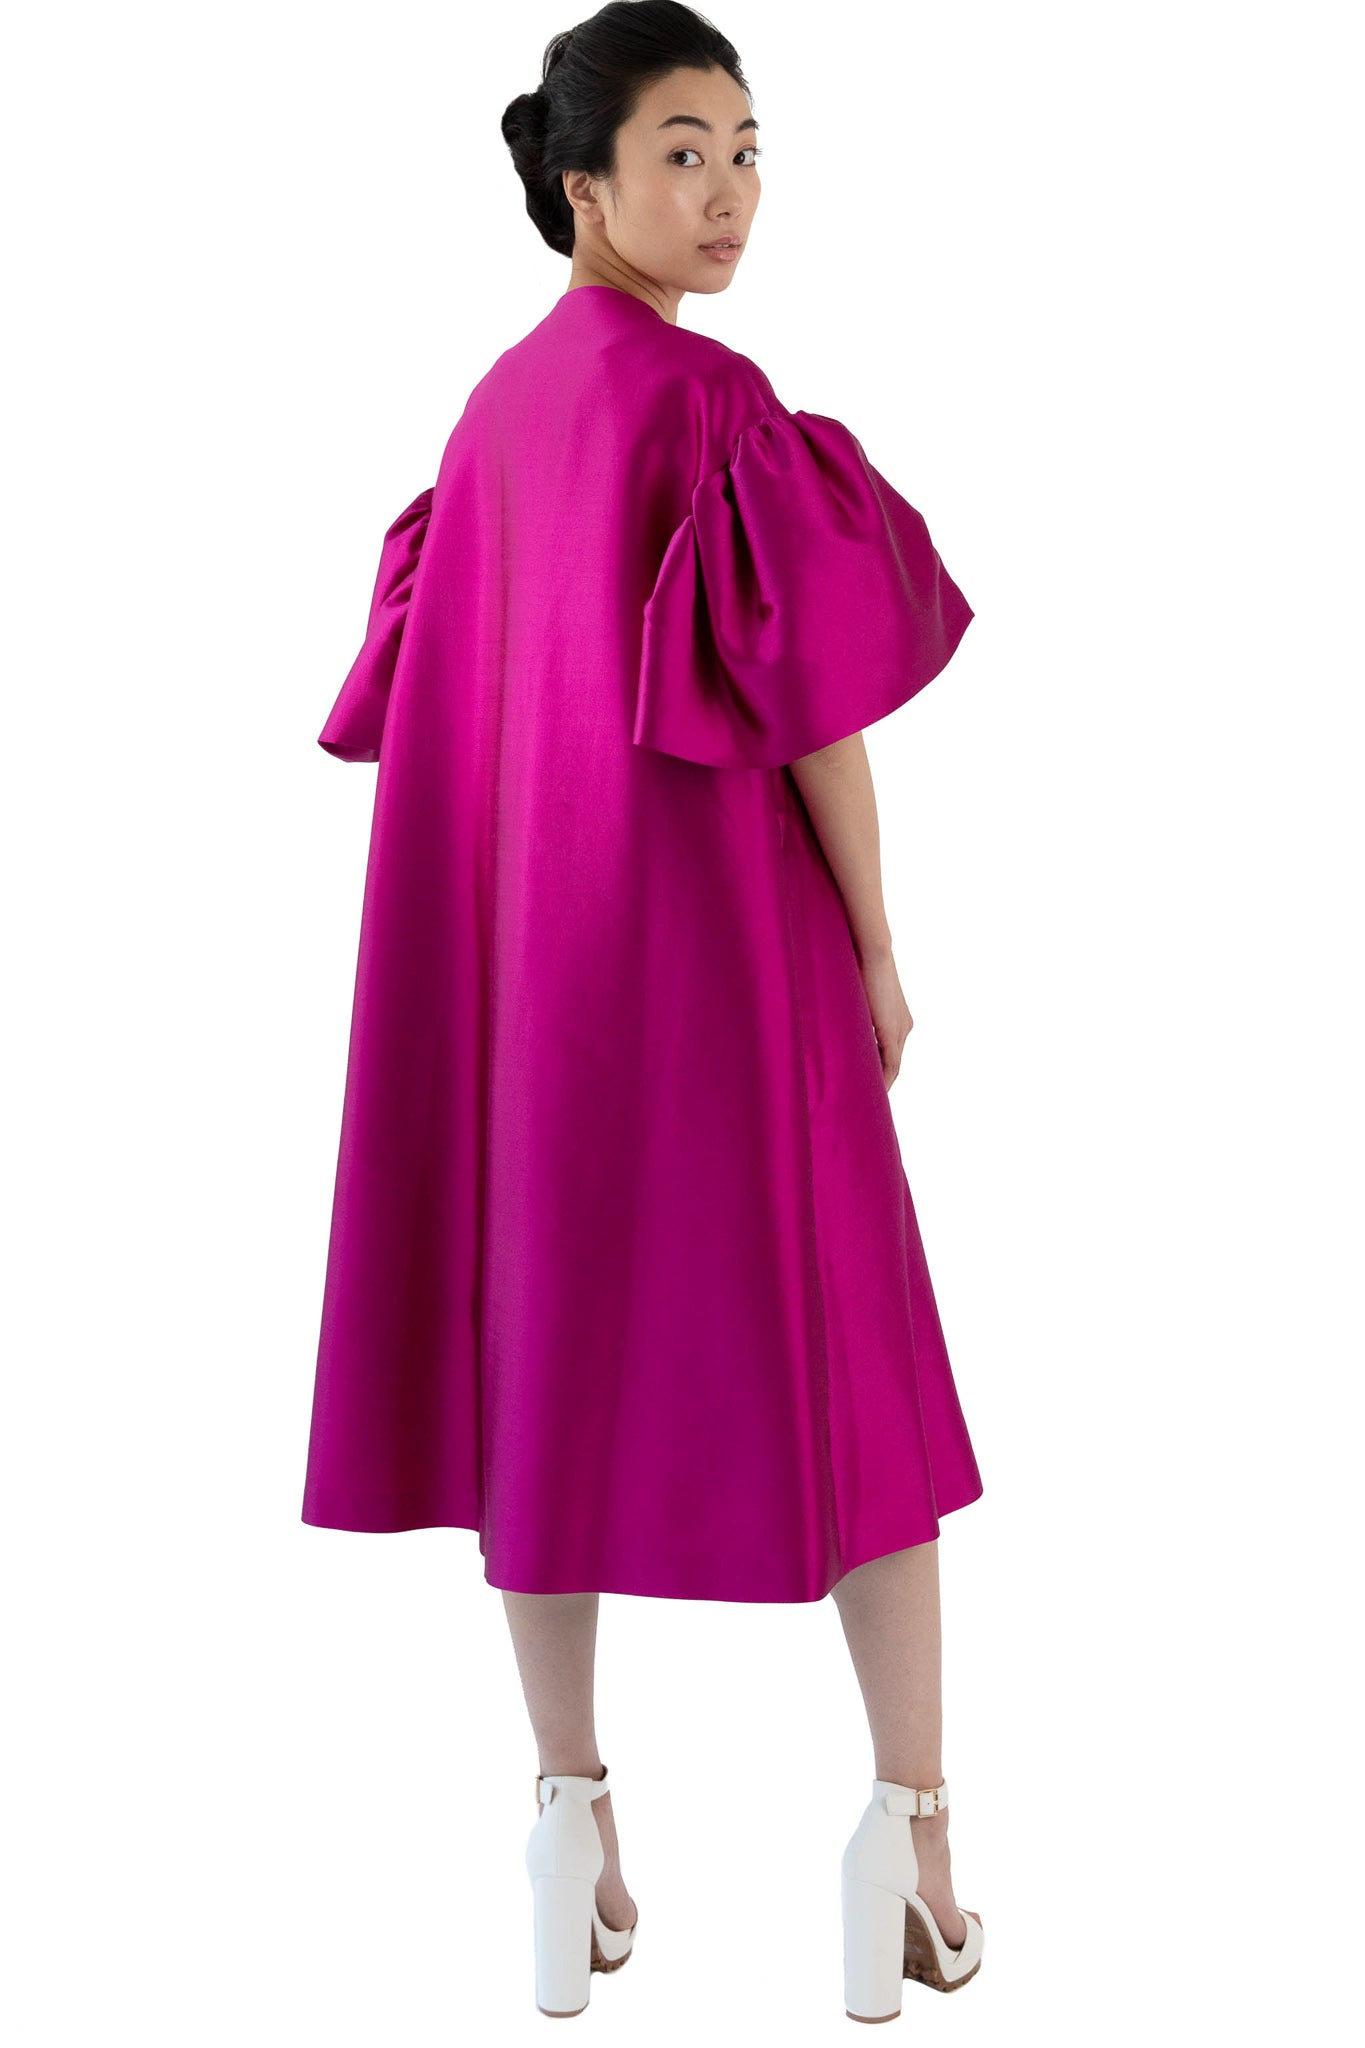 Women's fuchsia opera coat